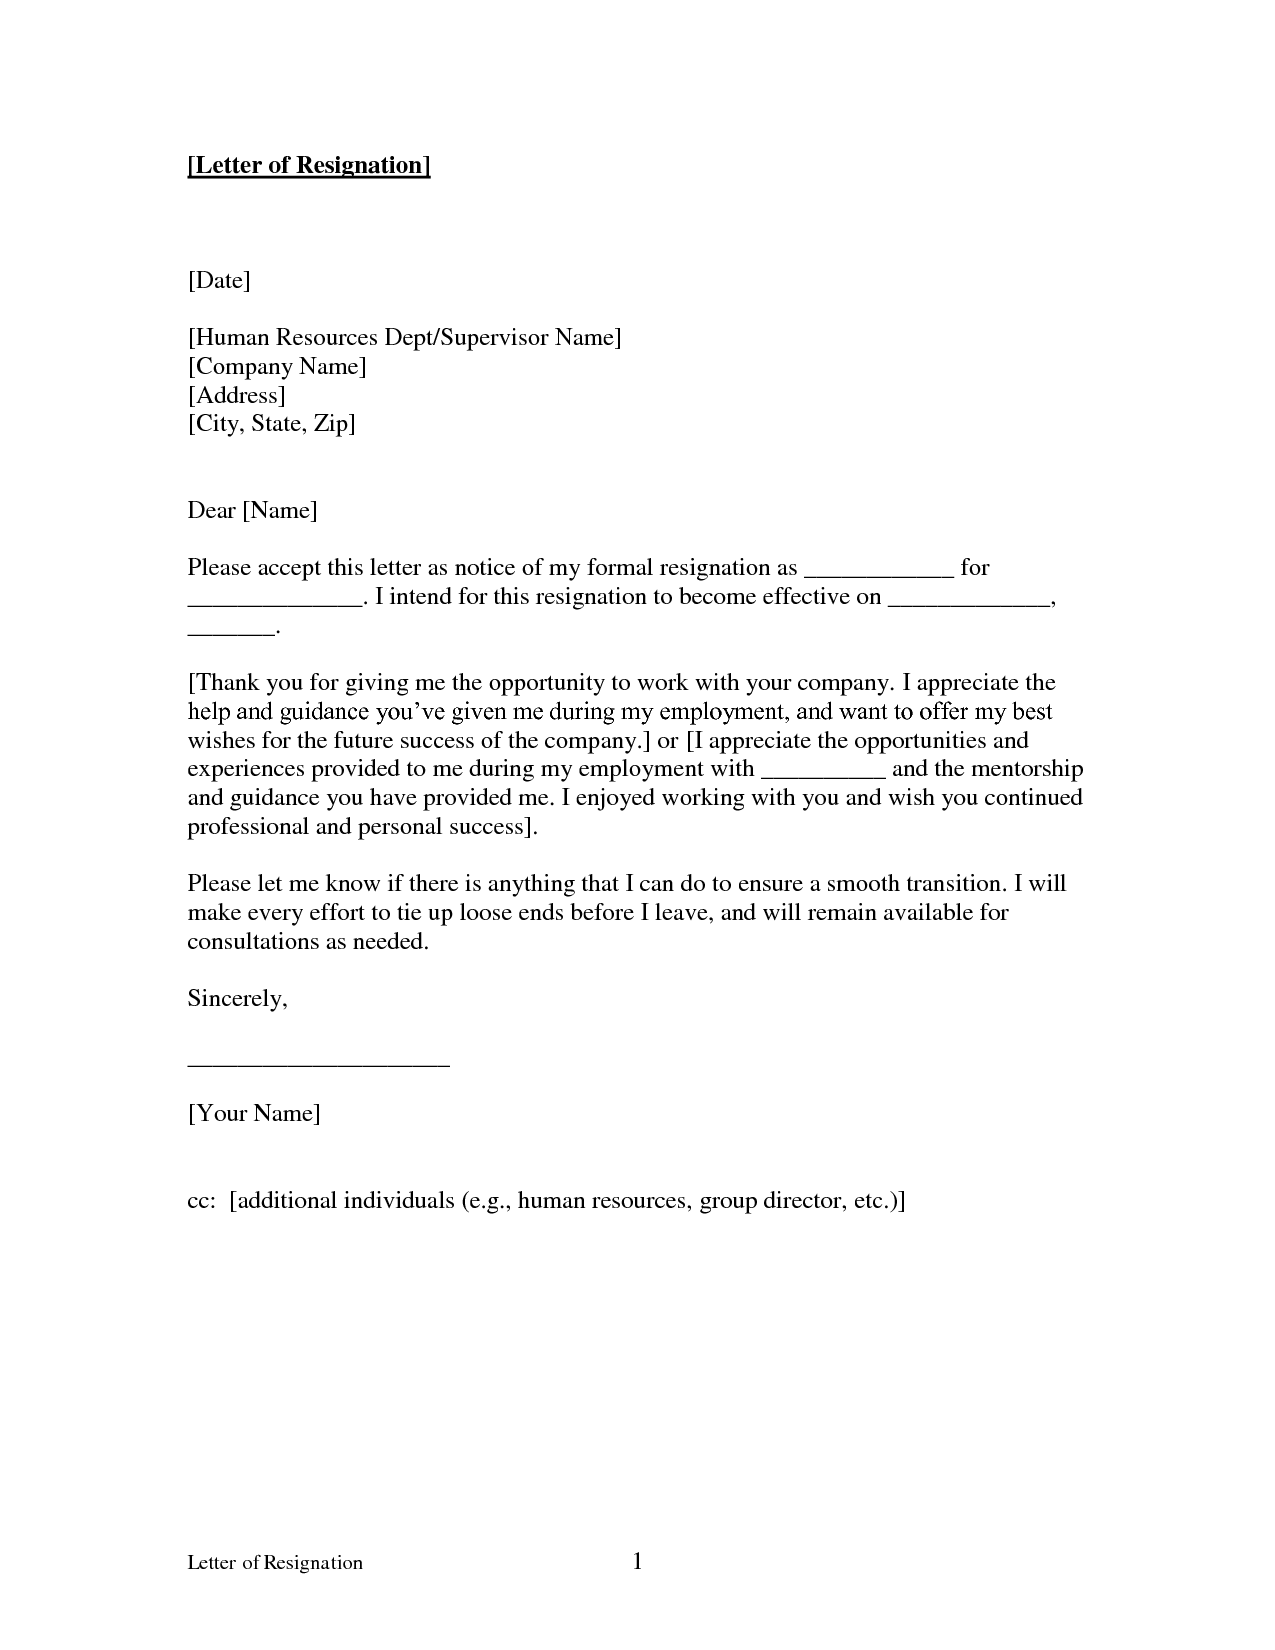 Example Of A Letter Of Resignation Resignation Letter Example